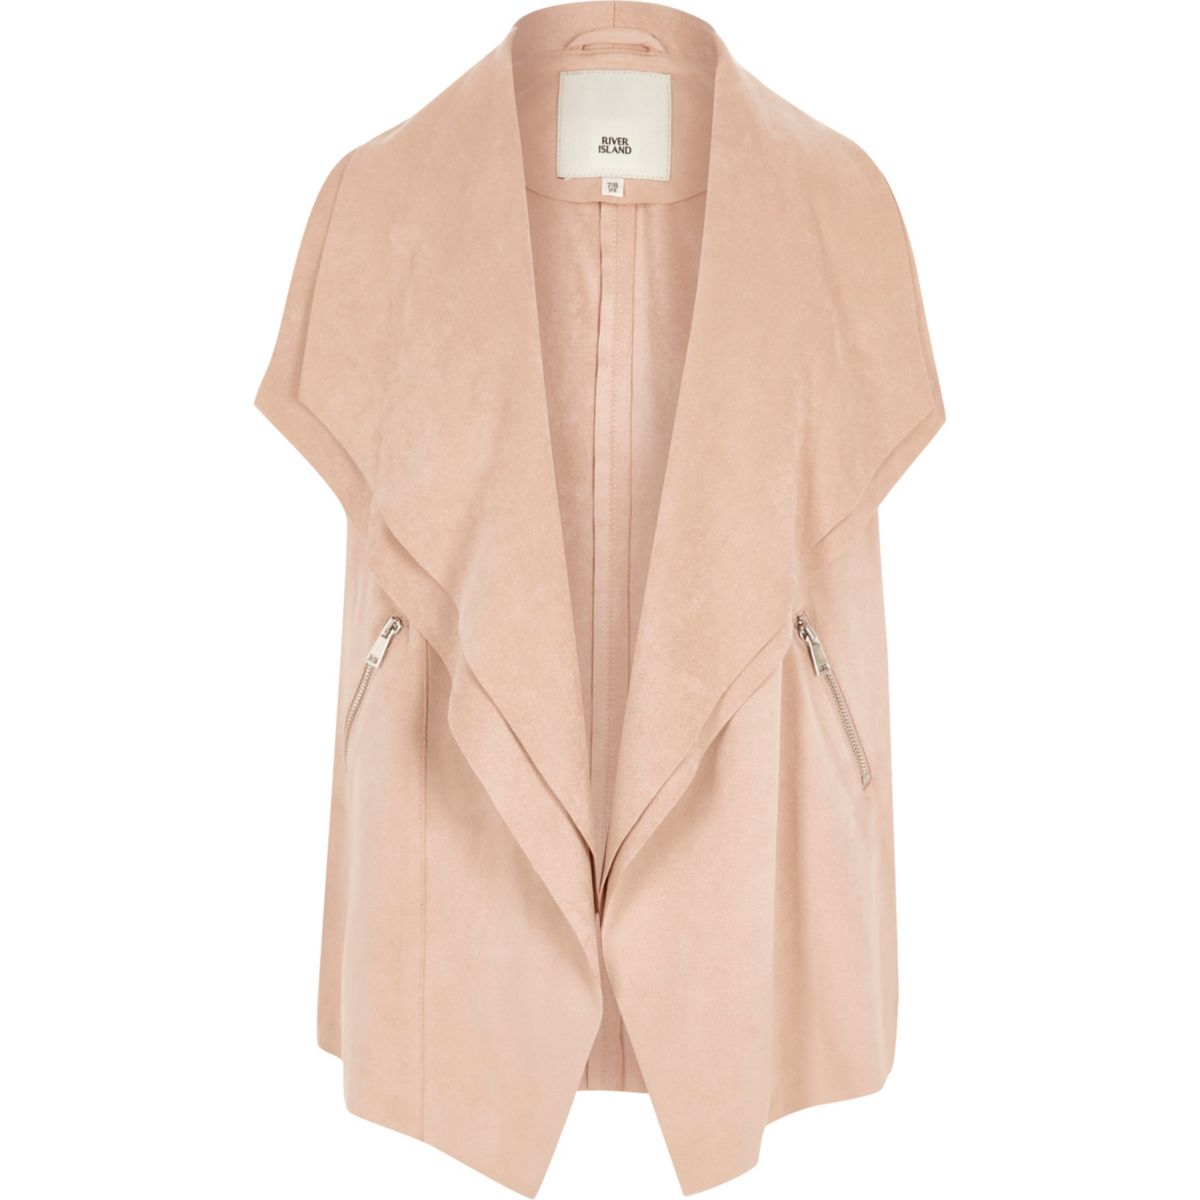 Girls cream sleeveless waterfall jacket